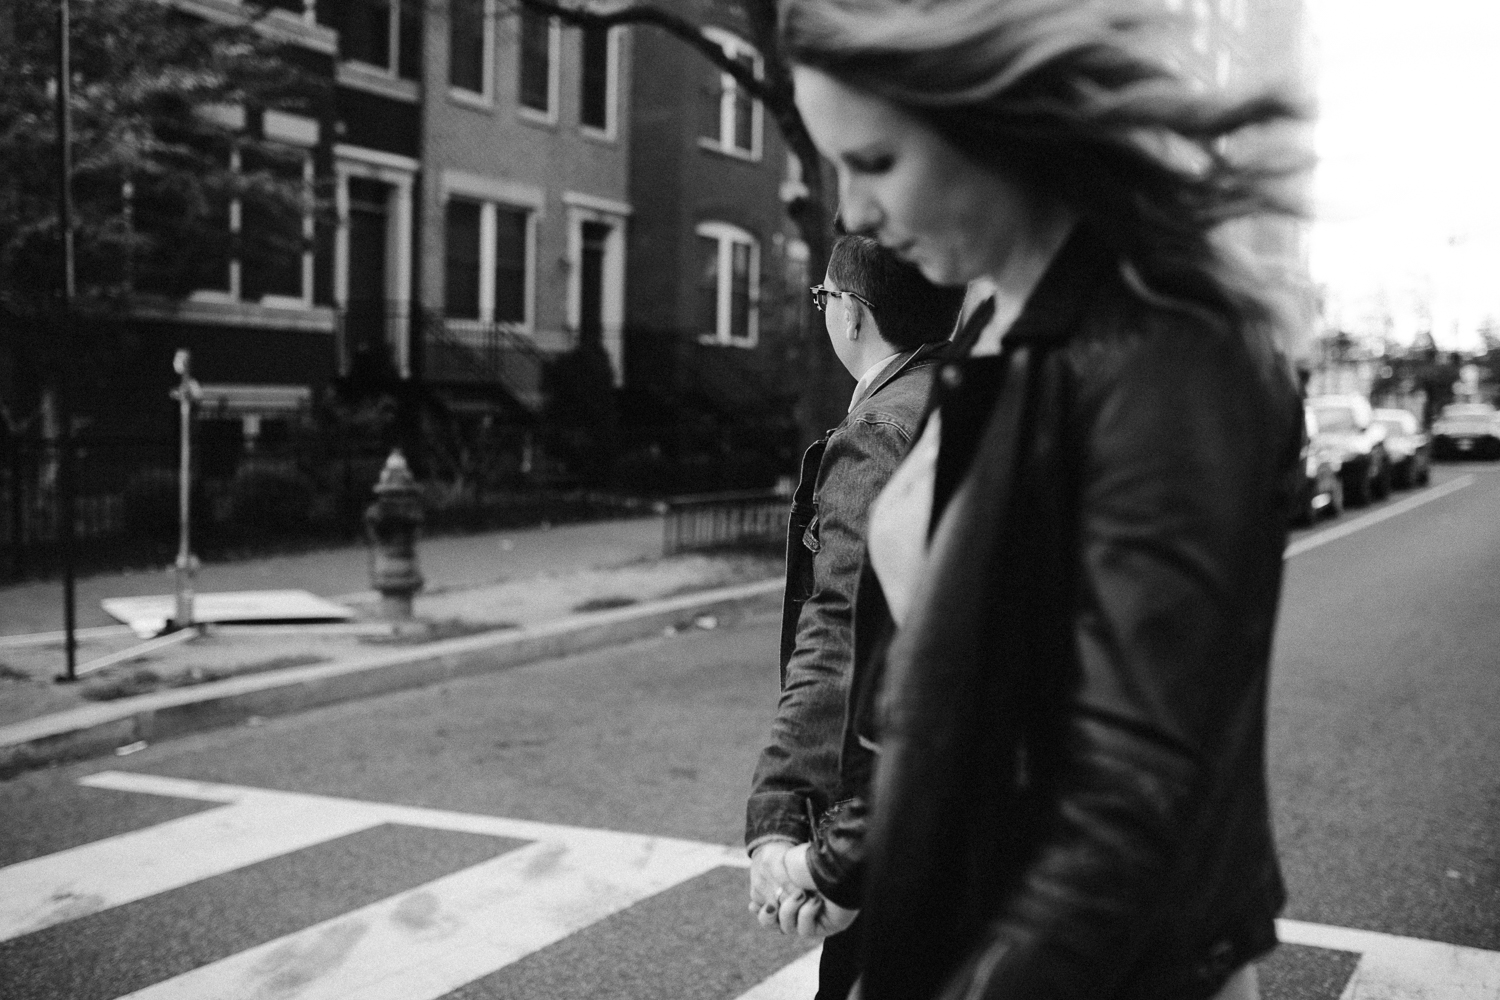 in-home-blagden-alley-washington-dc-engagement-photographer-44.jpg